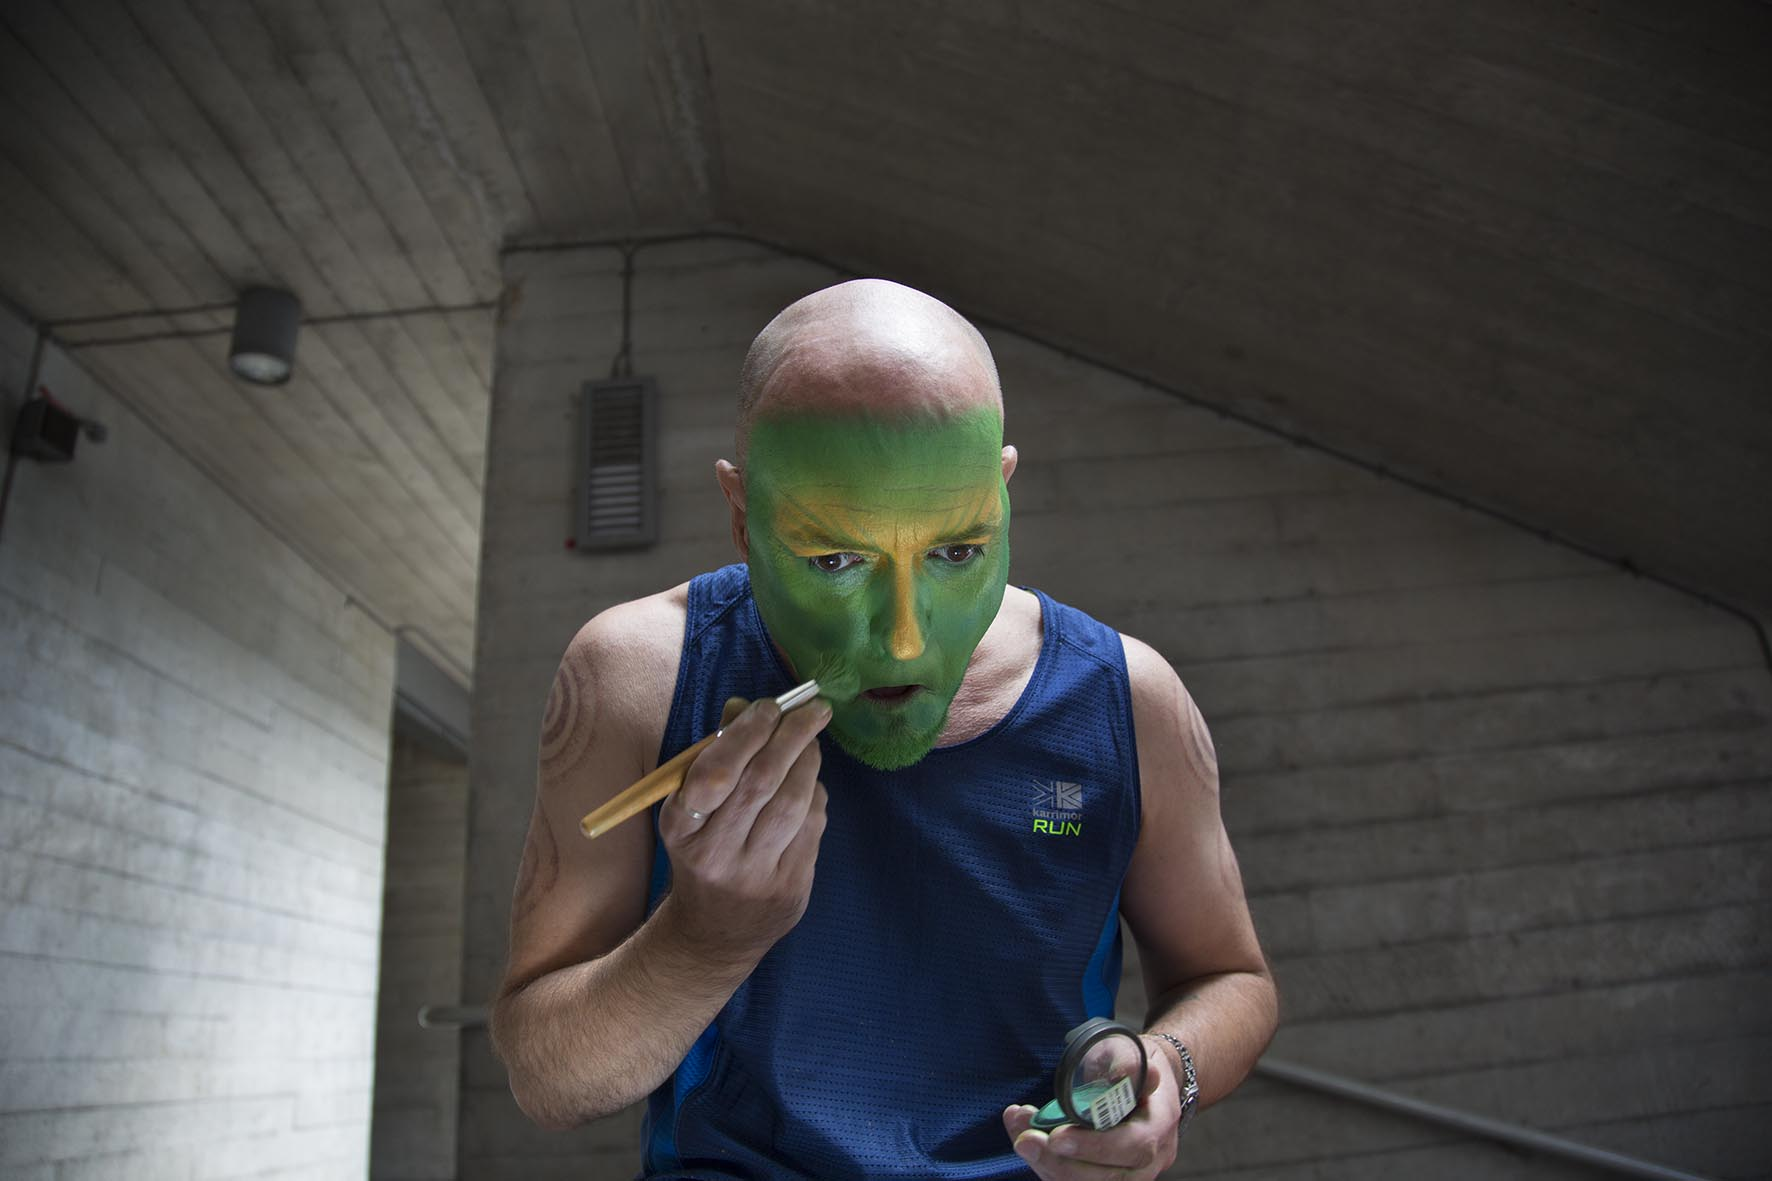 Living statue Mark Tate prepares his make up before a shift as the Green Man in a quiet place under the iconic Southbank concrete architecture.